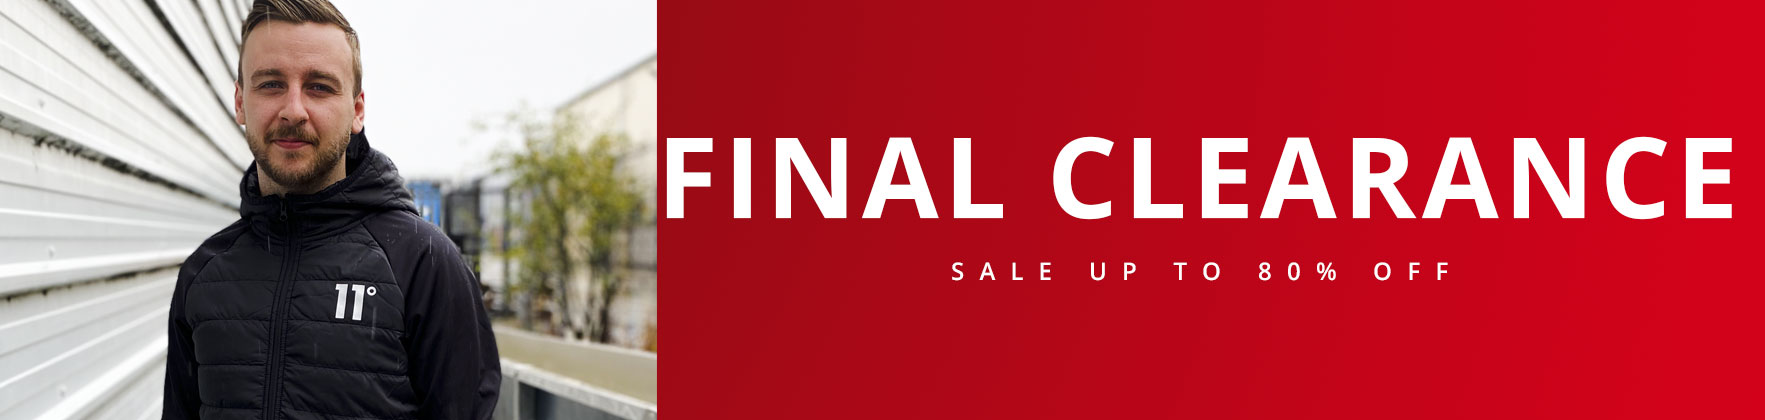 Men's Final Clearance Sale- Up to 80% Off